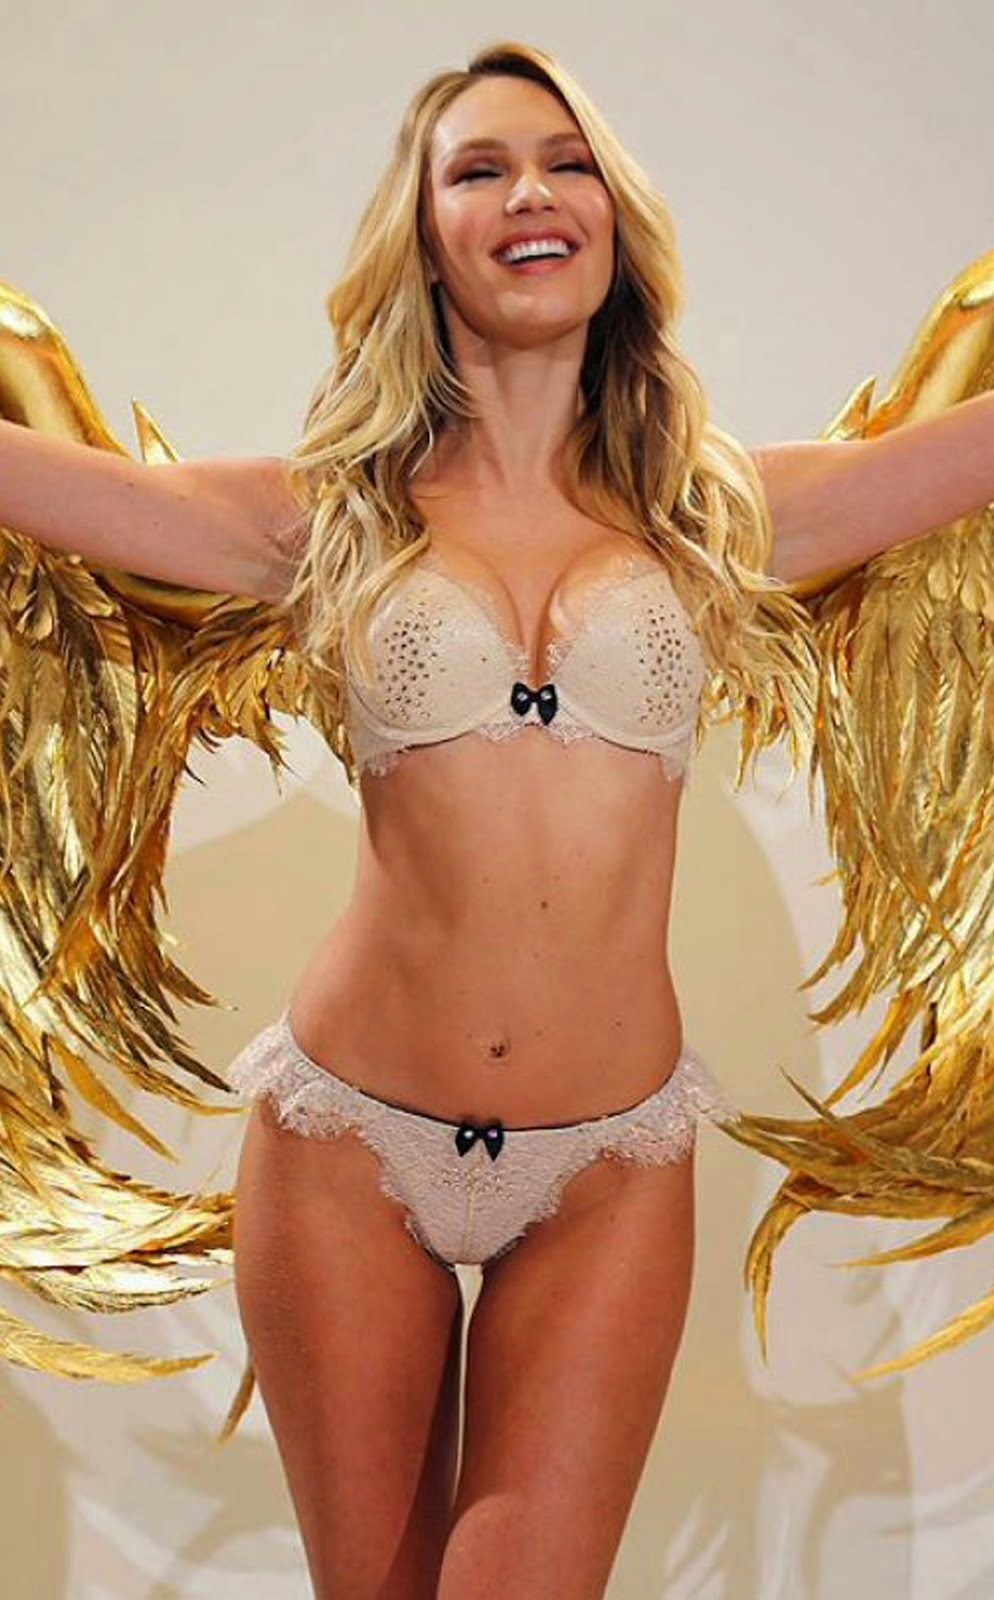 VICTORIA'S SECRET FASHION SHOW 2014 CANDICE SWANEPOEL